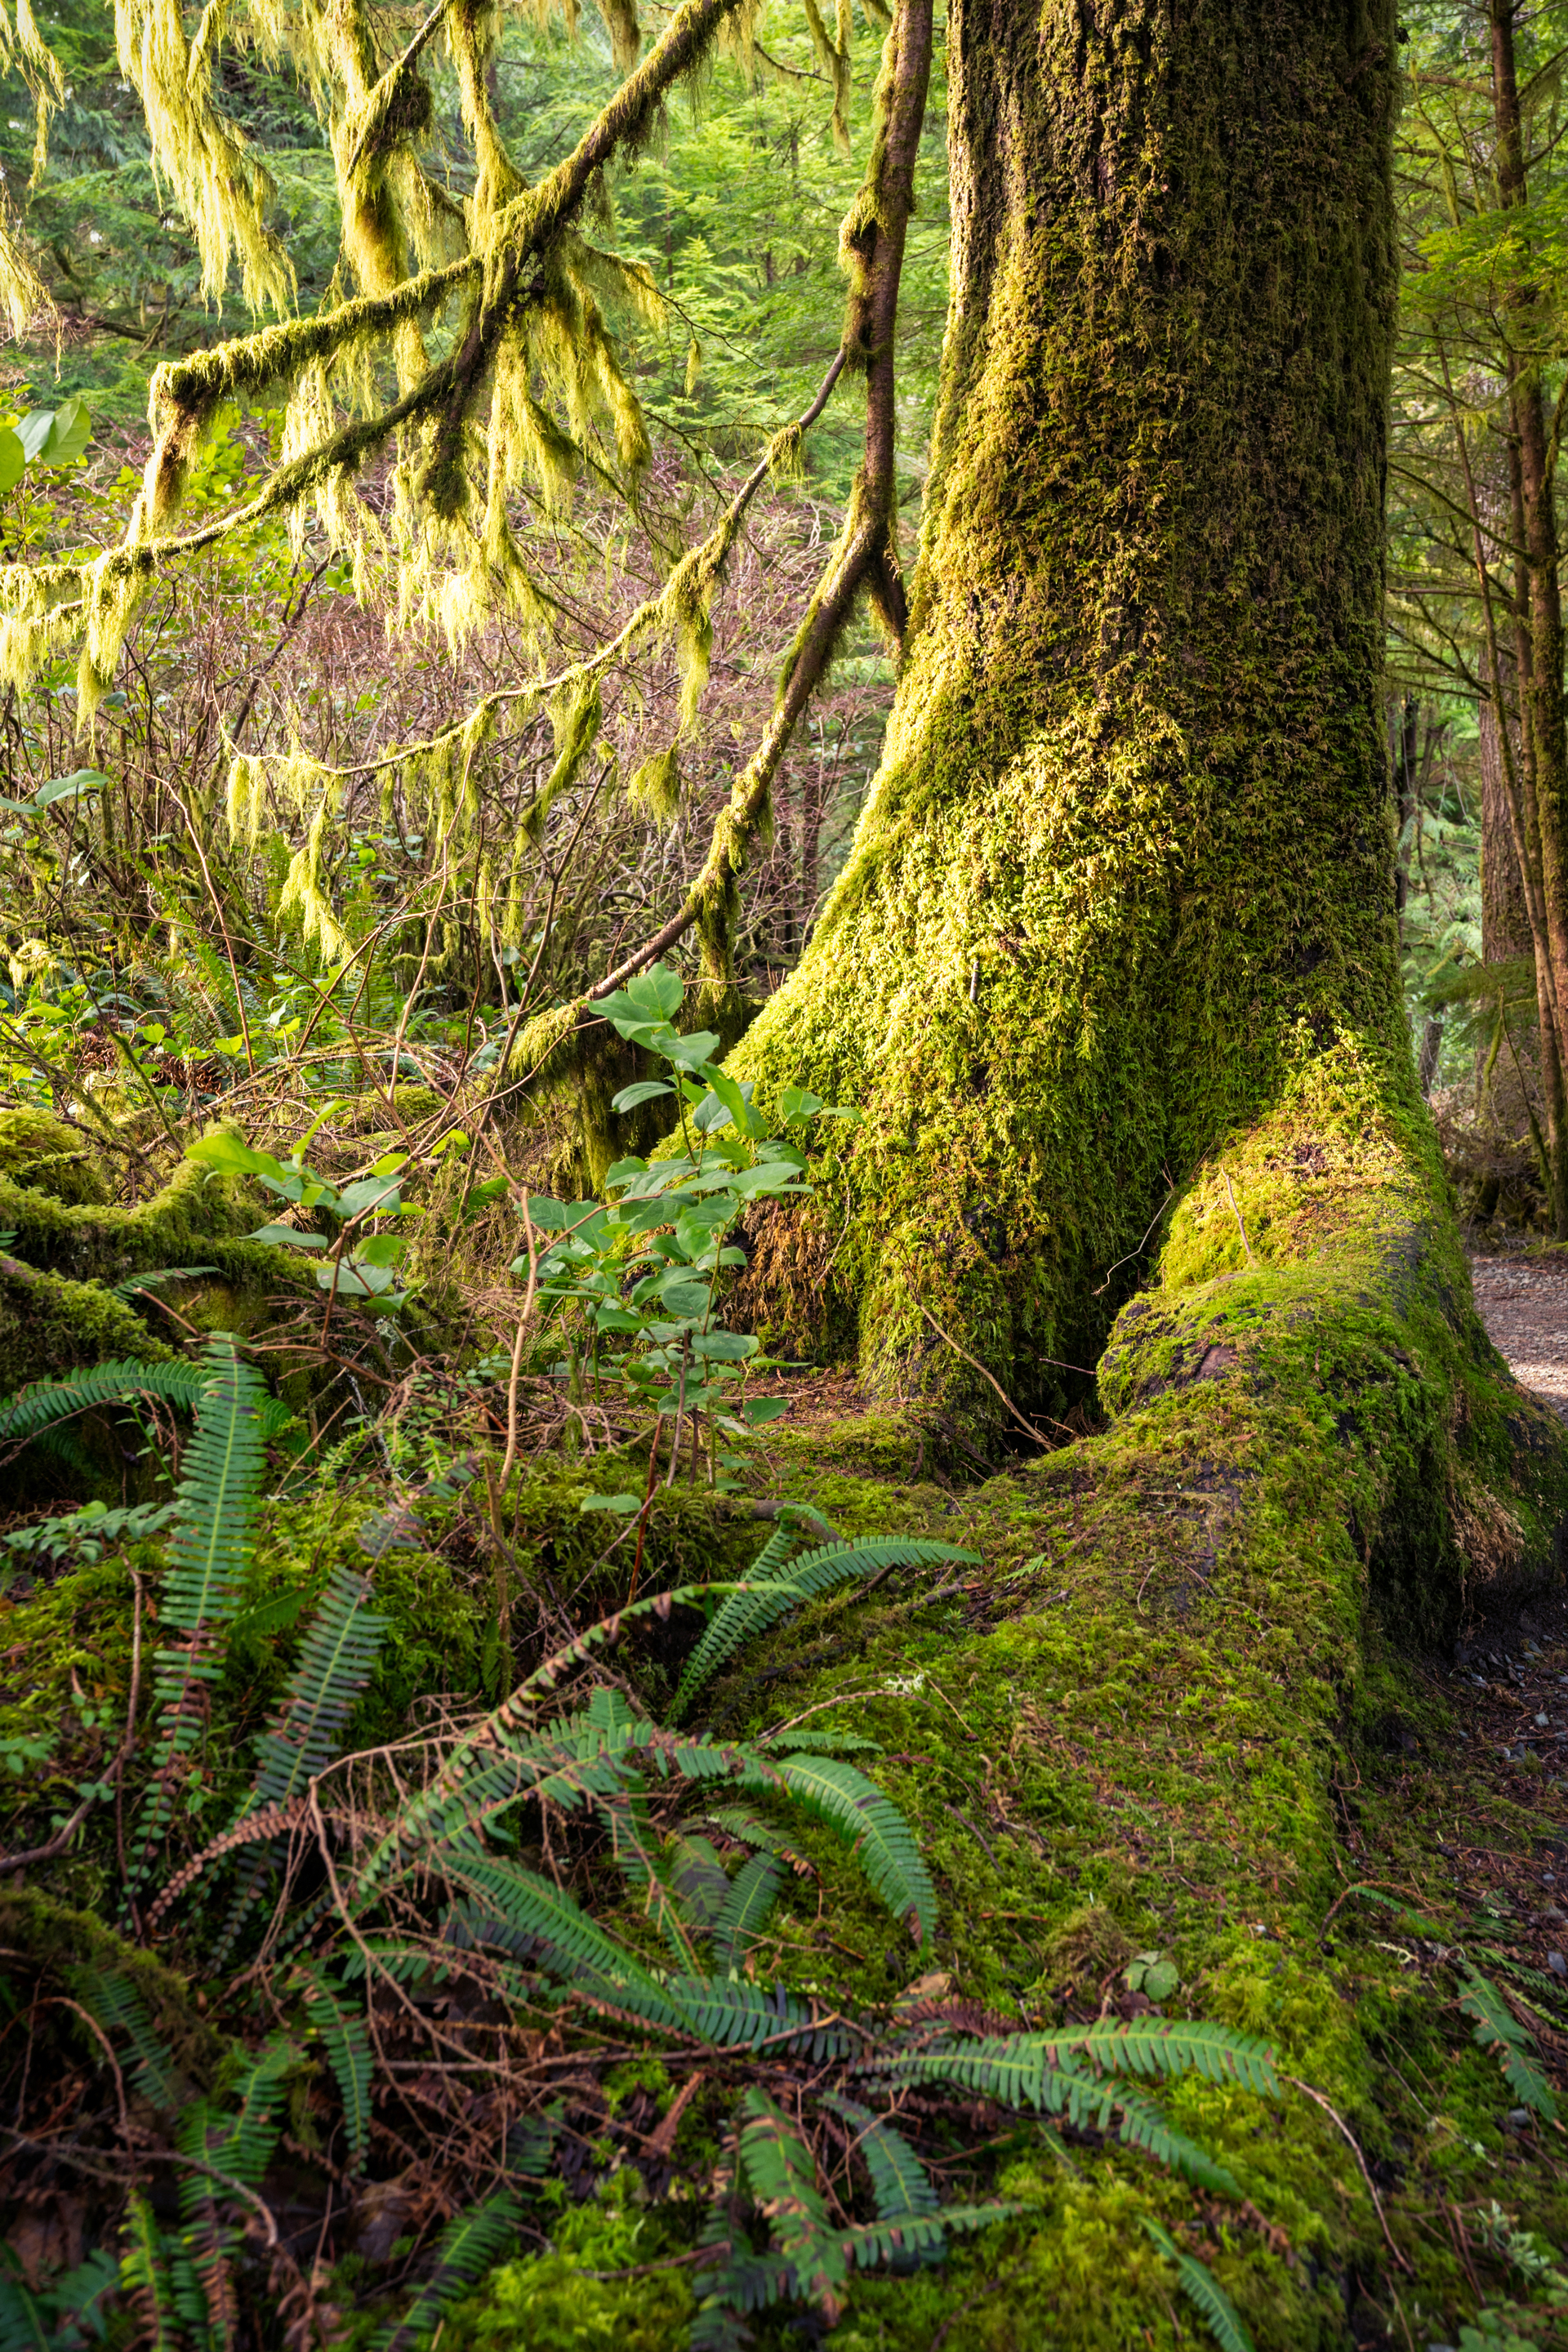 Moss laden trees and an old growth forest